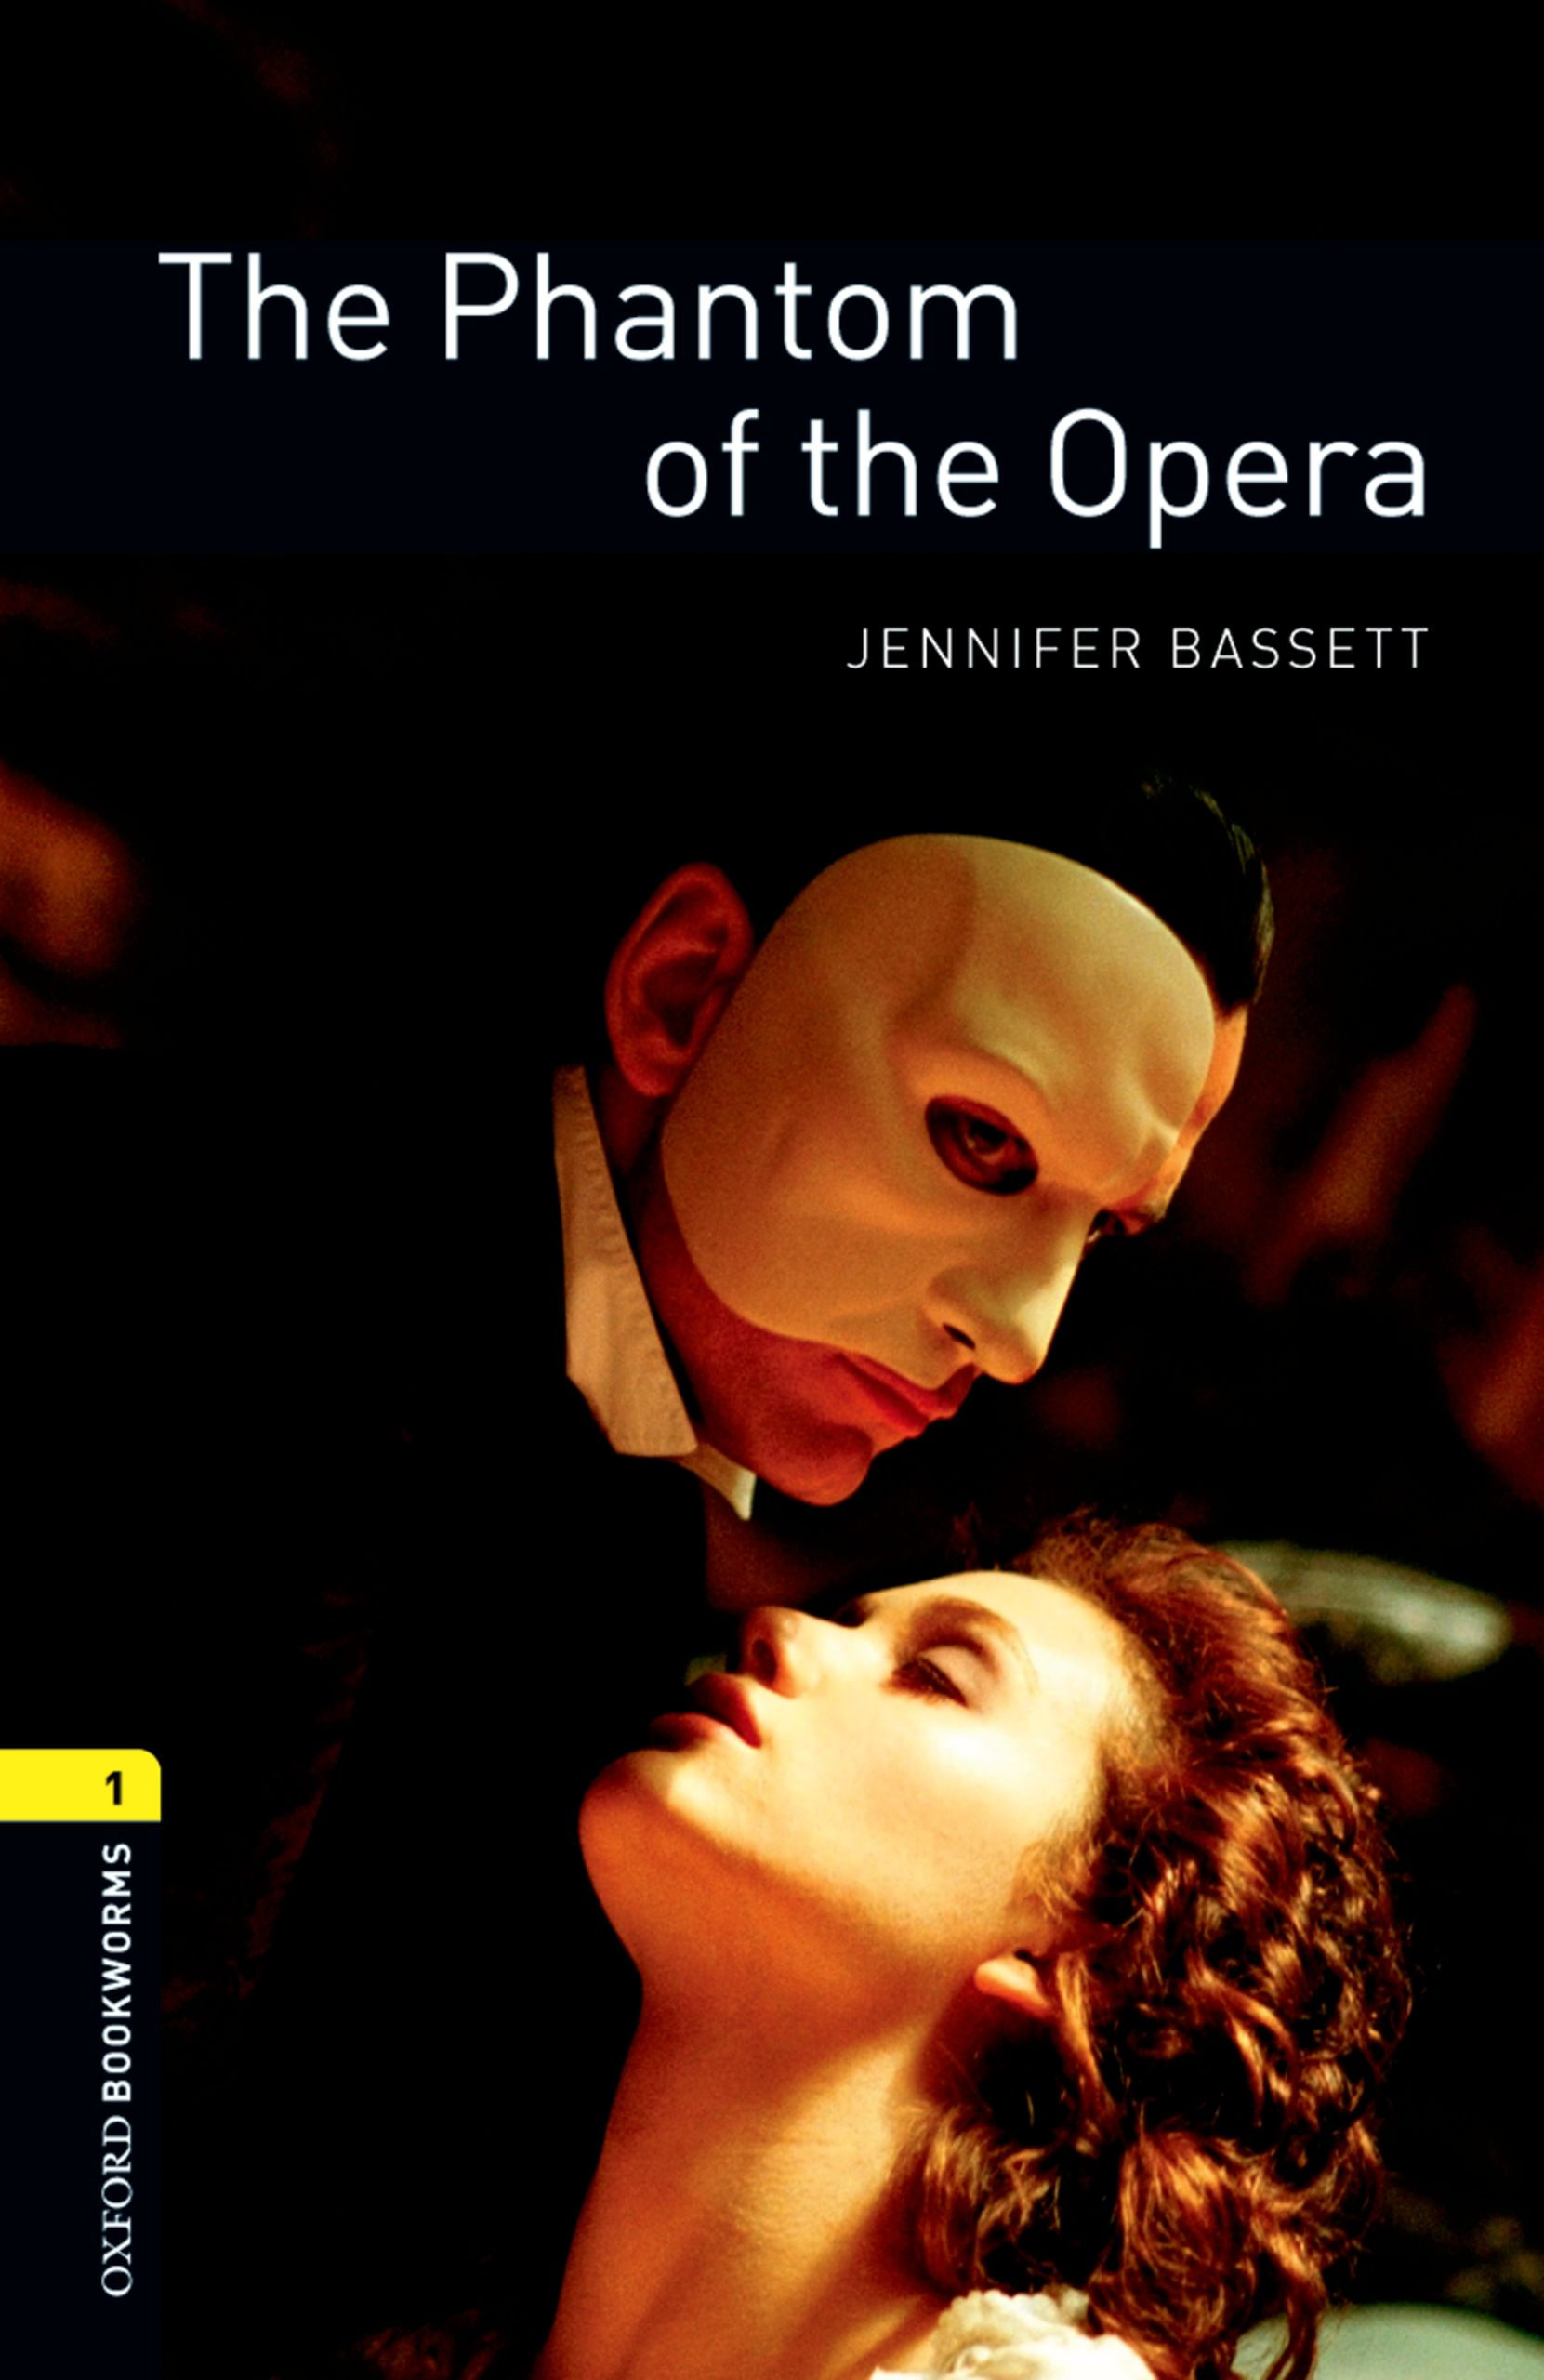 Jennifer Bassett The Phantom of the Opera mabel wagnalls stars of the opera